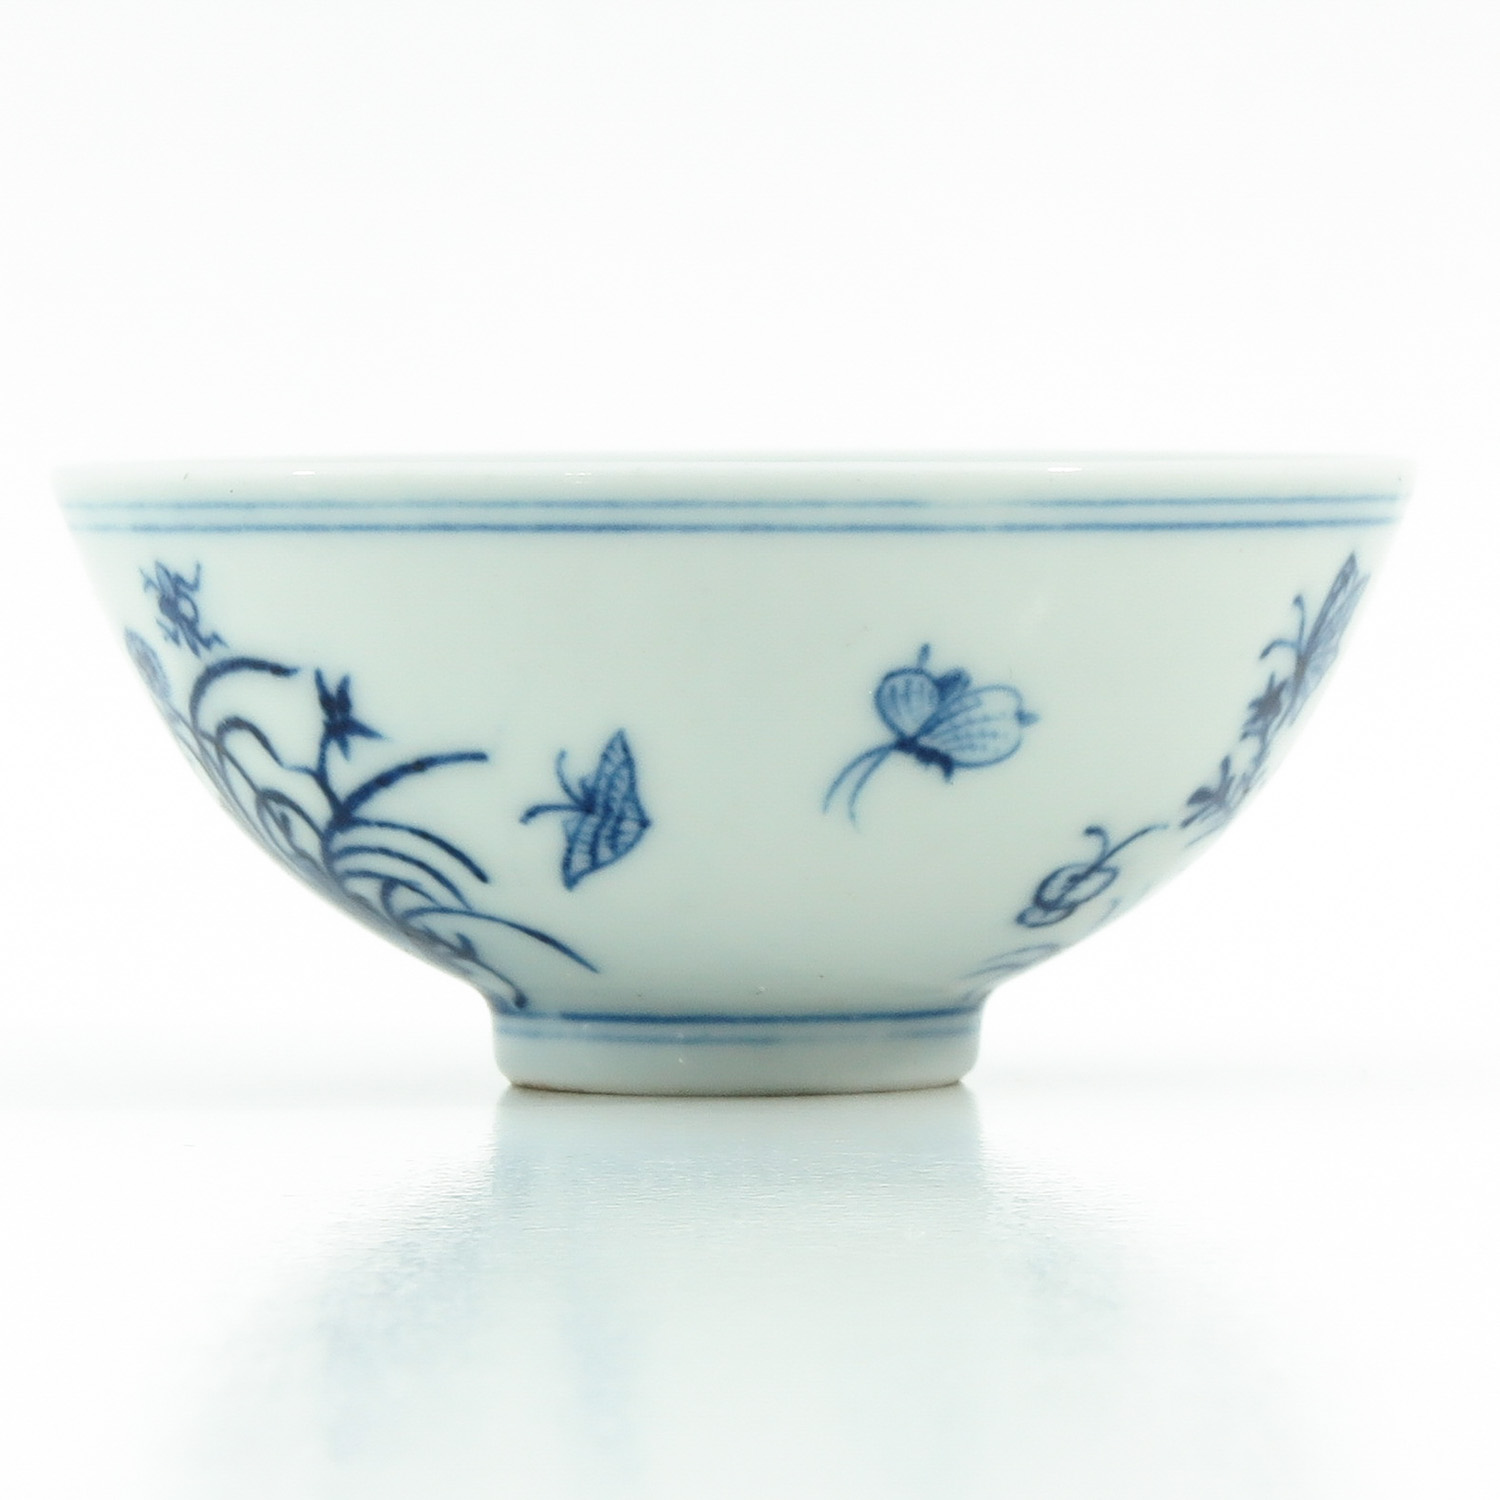 A Blue and White Cup - Image 2 of 9